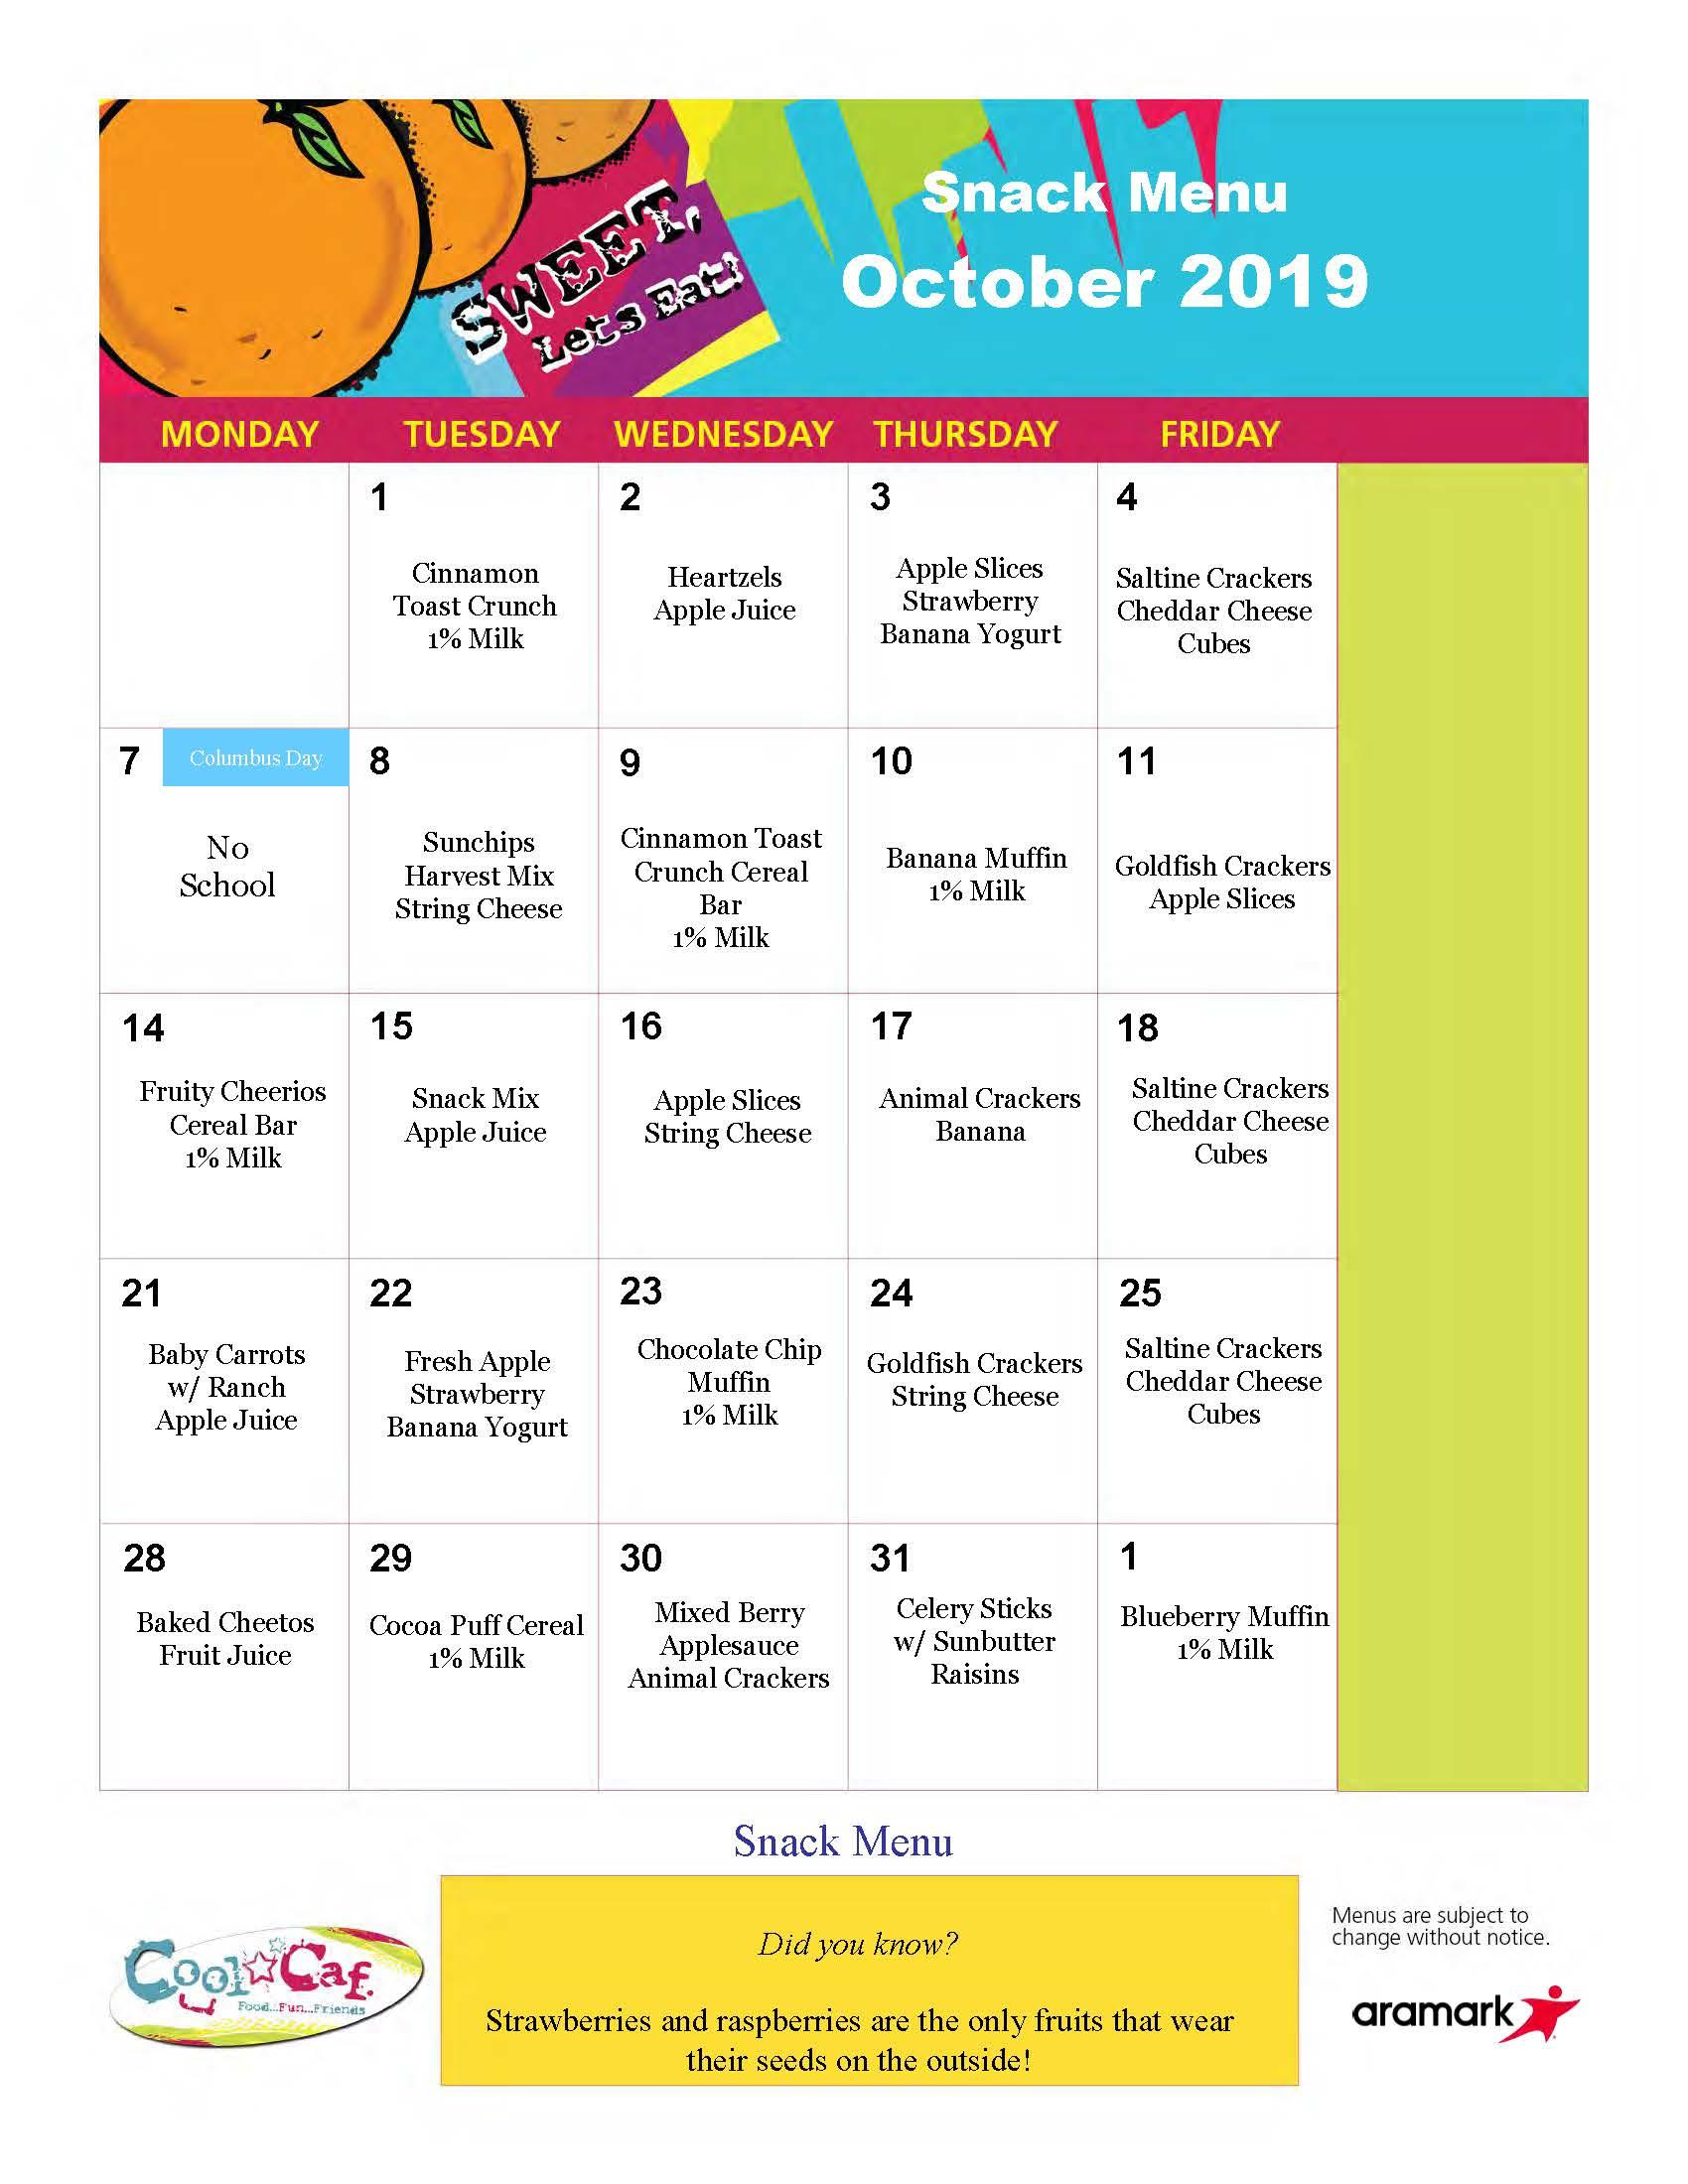 Elmwood BASEC Snack Menu, October 2019